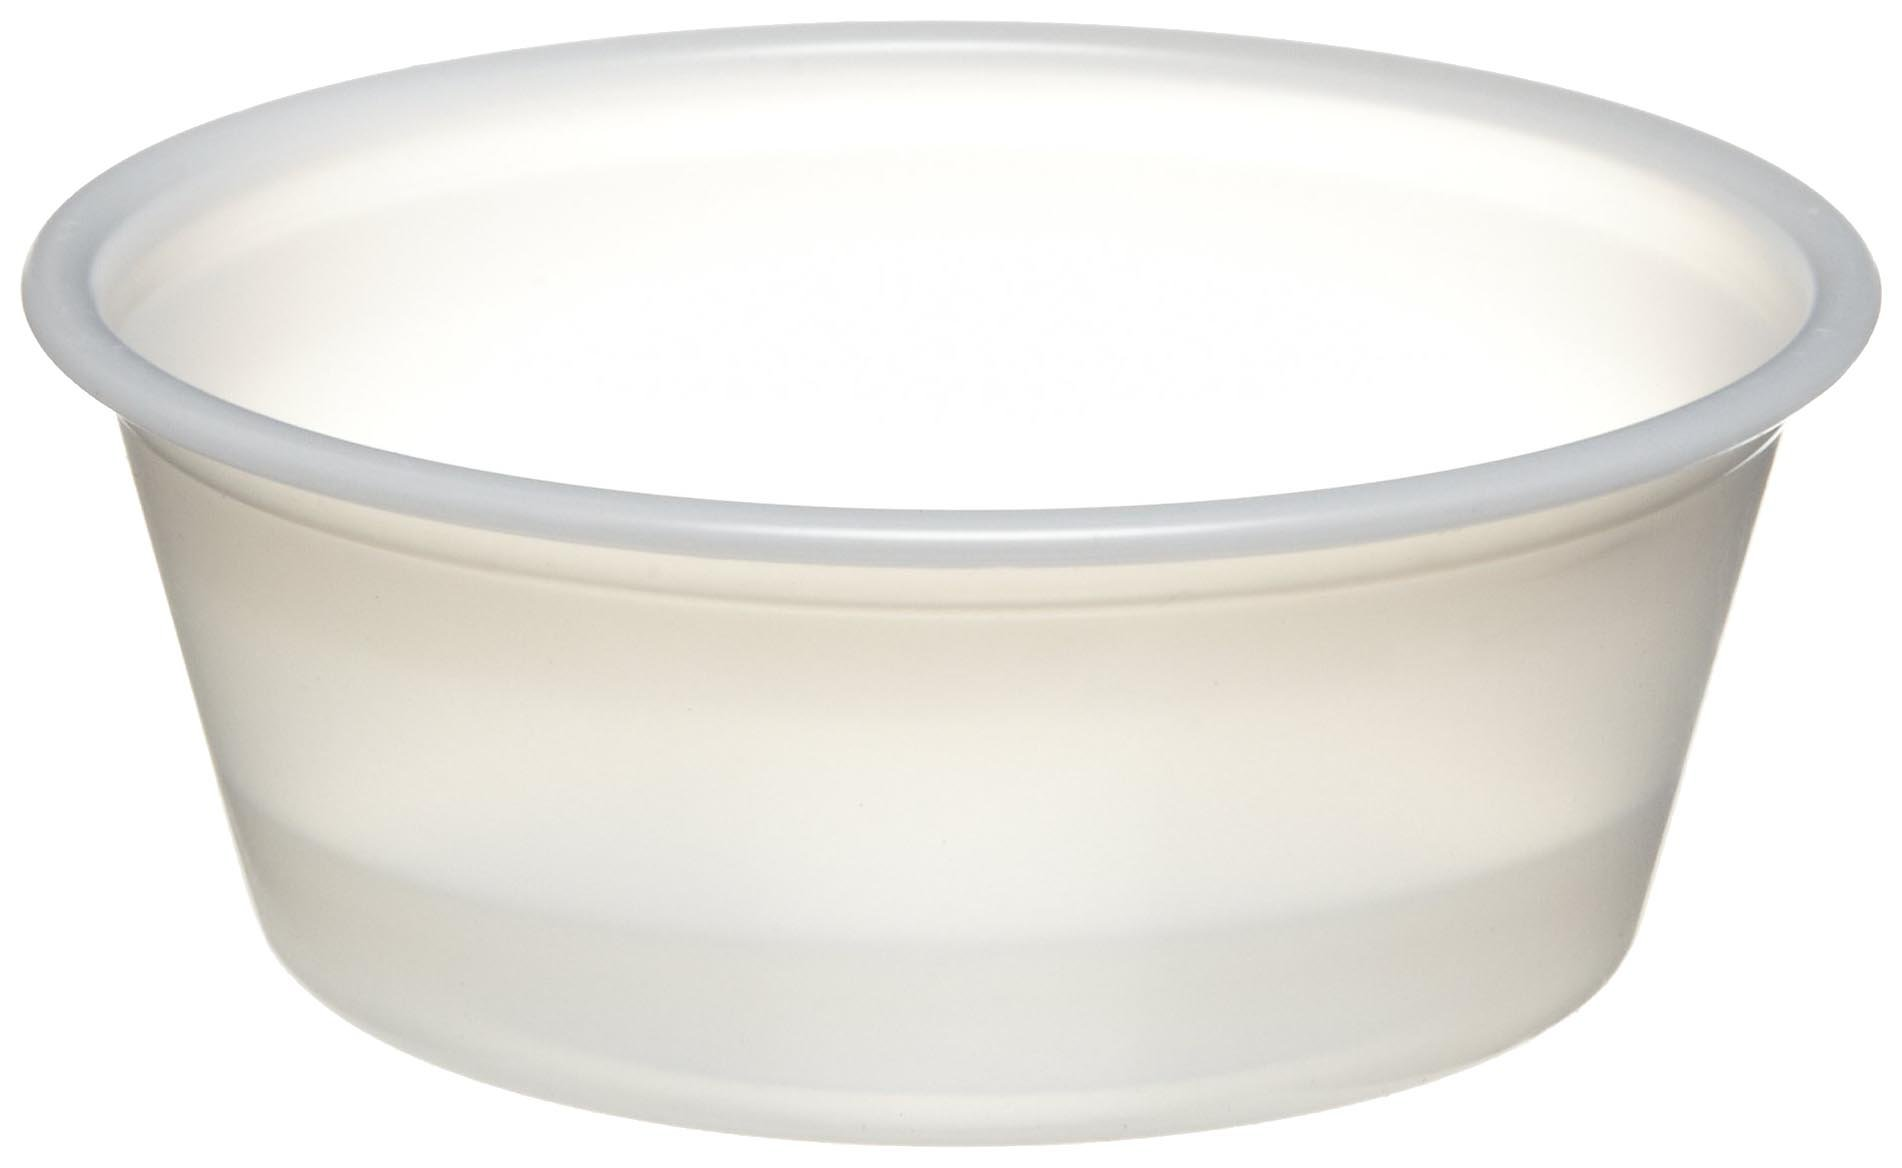 Dart P150N 1.5 oz Translucent PS Portion Container (Case of 2500) by Solo Foodservice